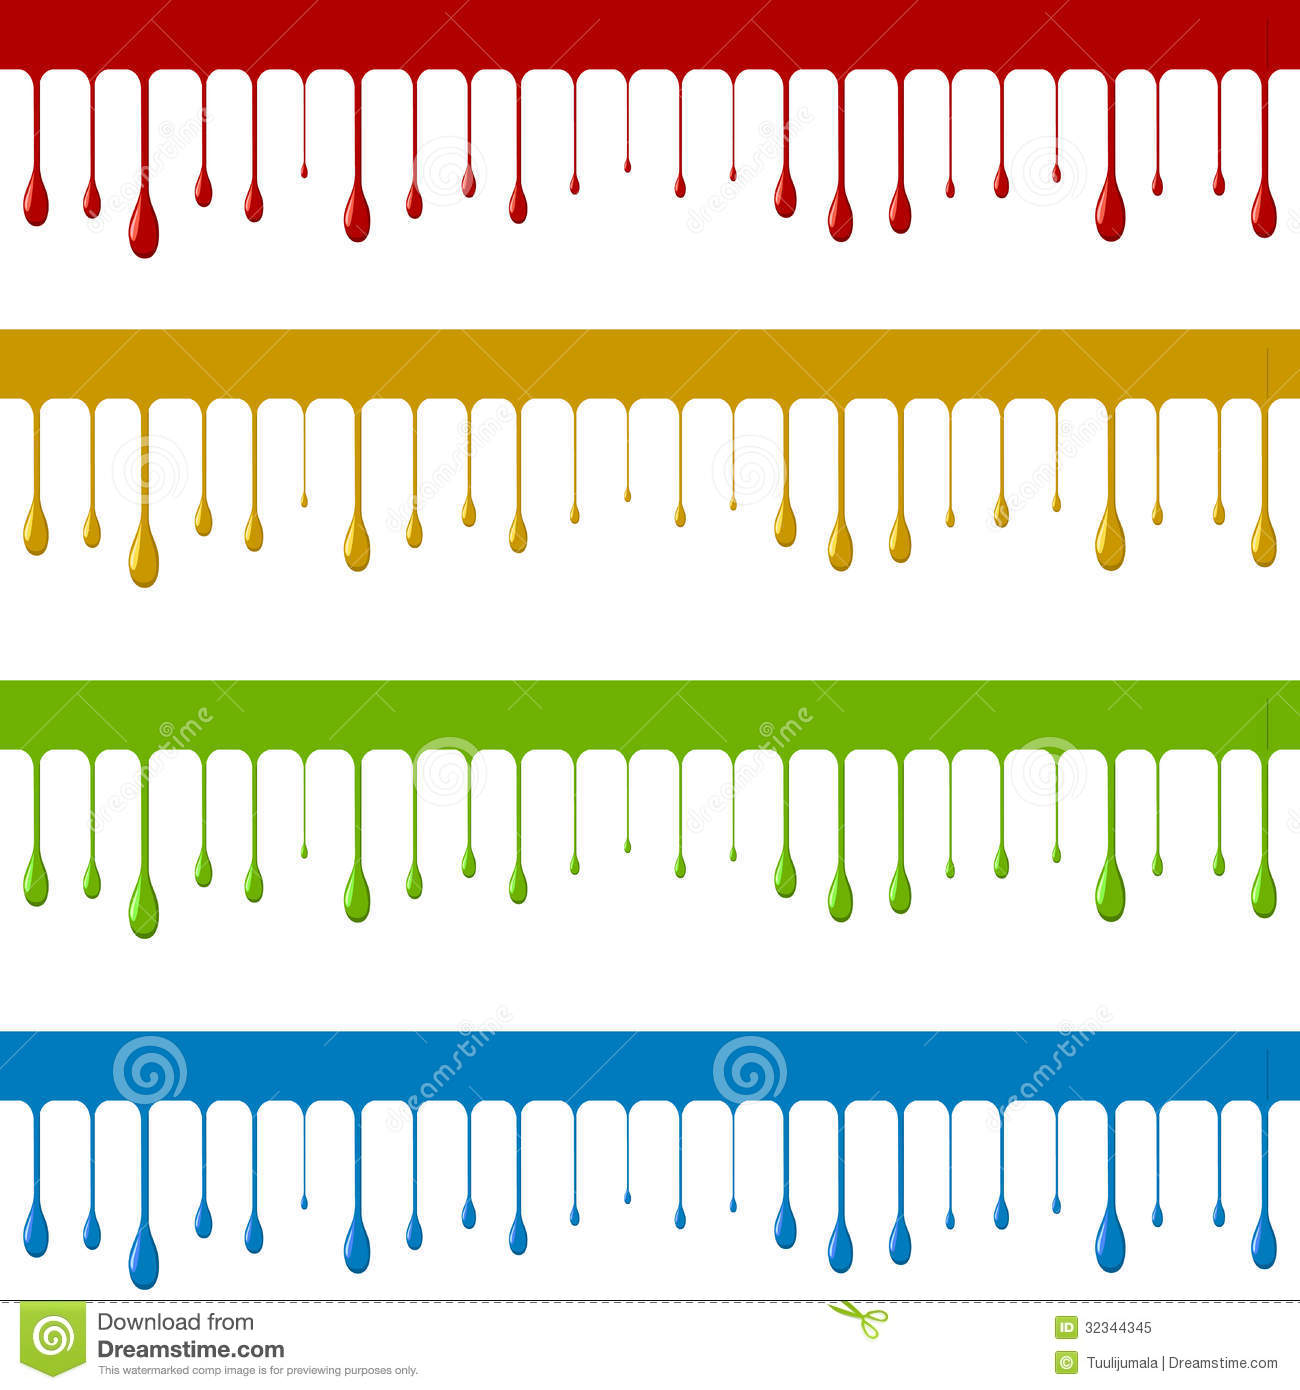 Color paint down flow stock vector. Illustration of creative - 32344345